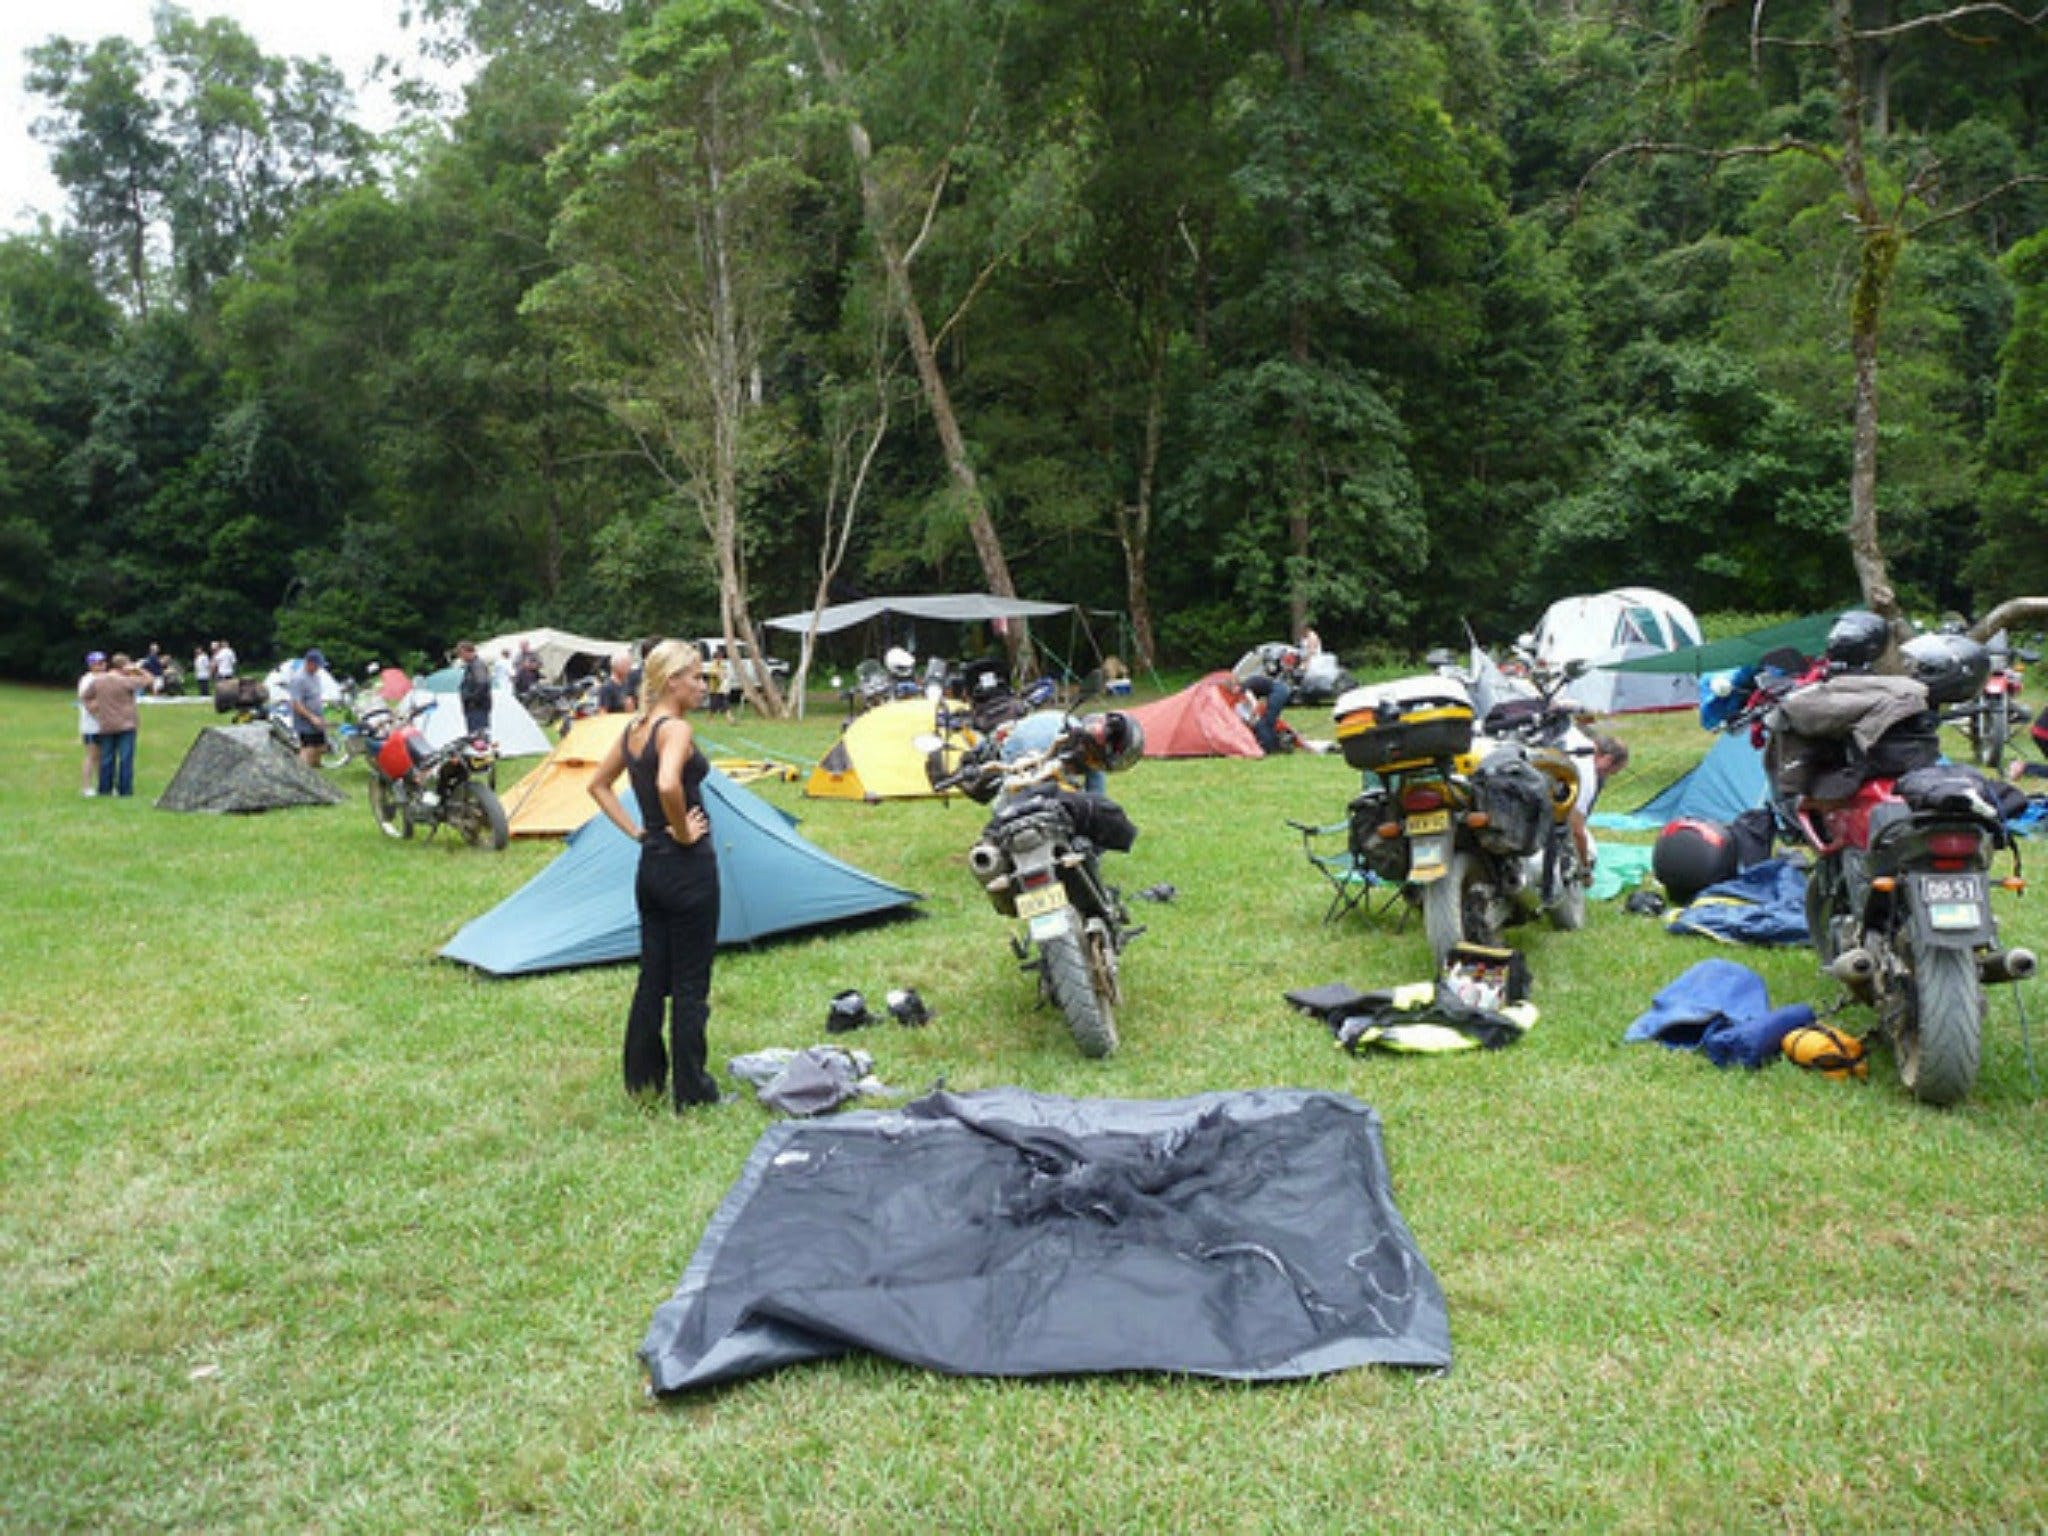 Karuah River Motorcycle Rally - Restaurant Find